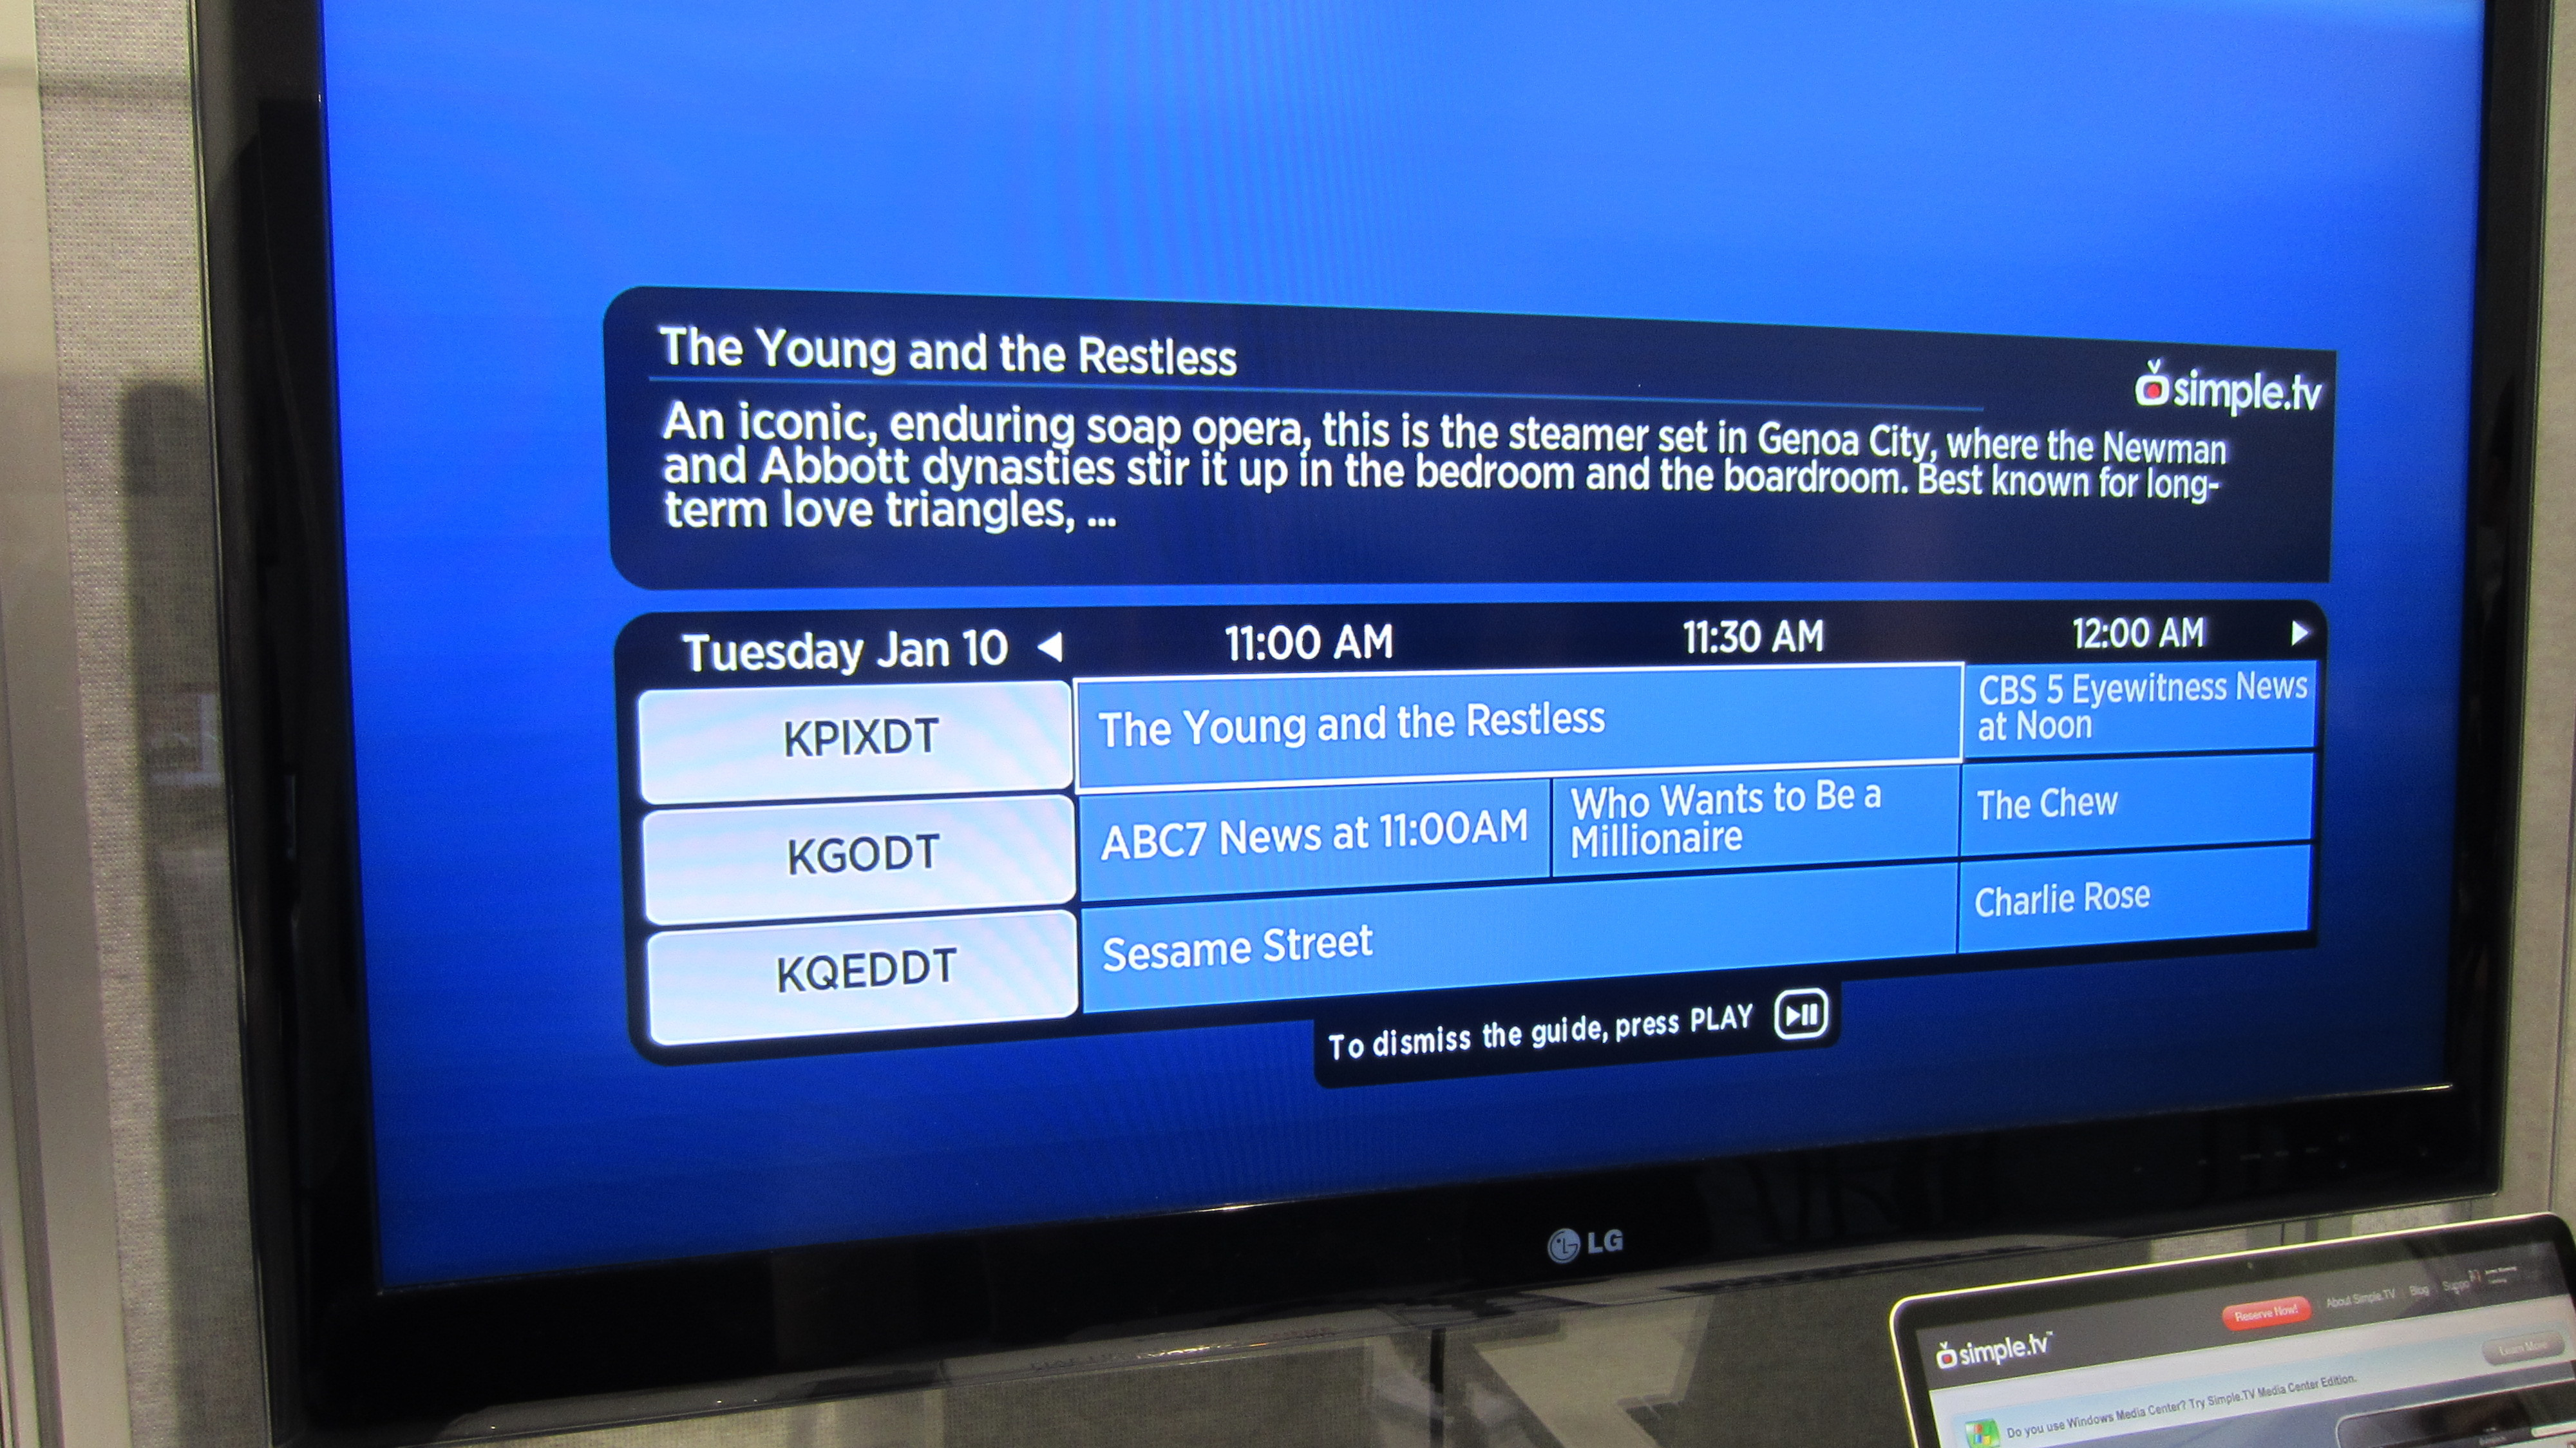 The EPG interface on the Roku app.